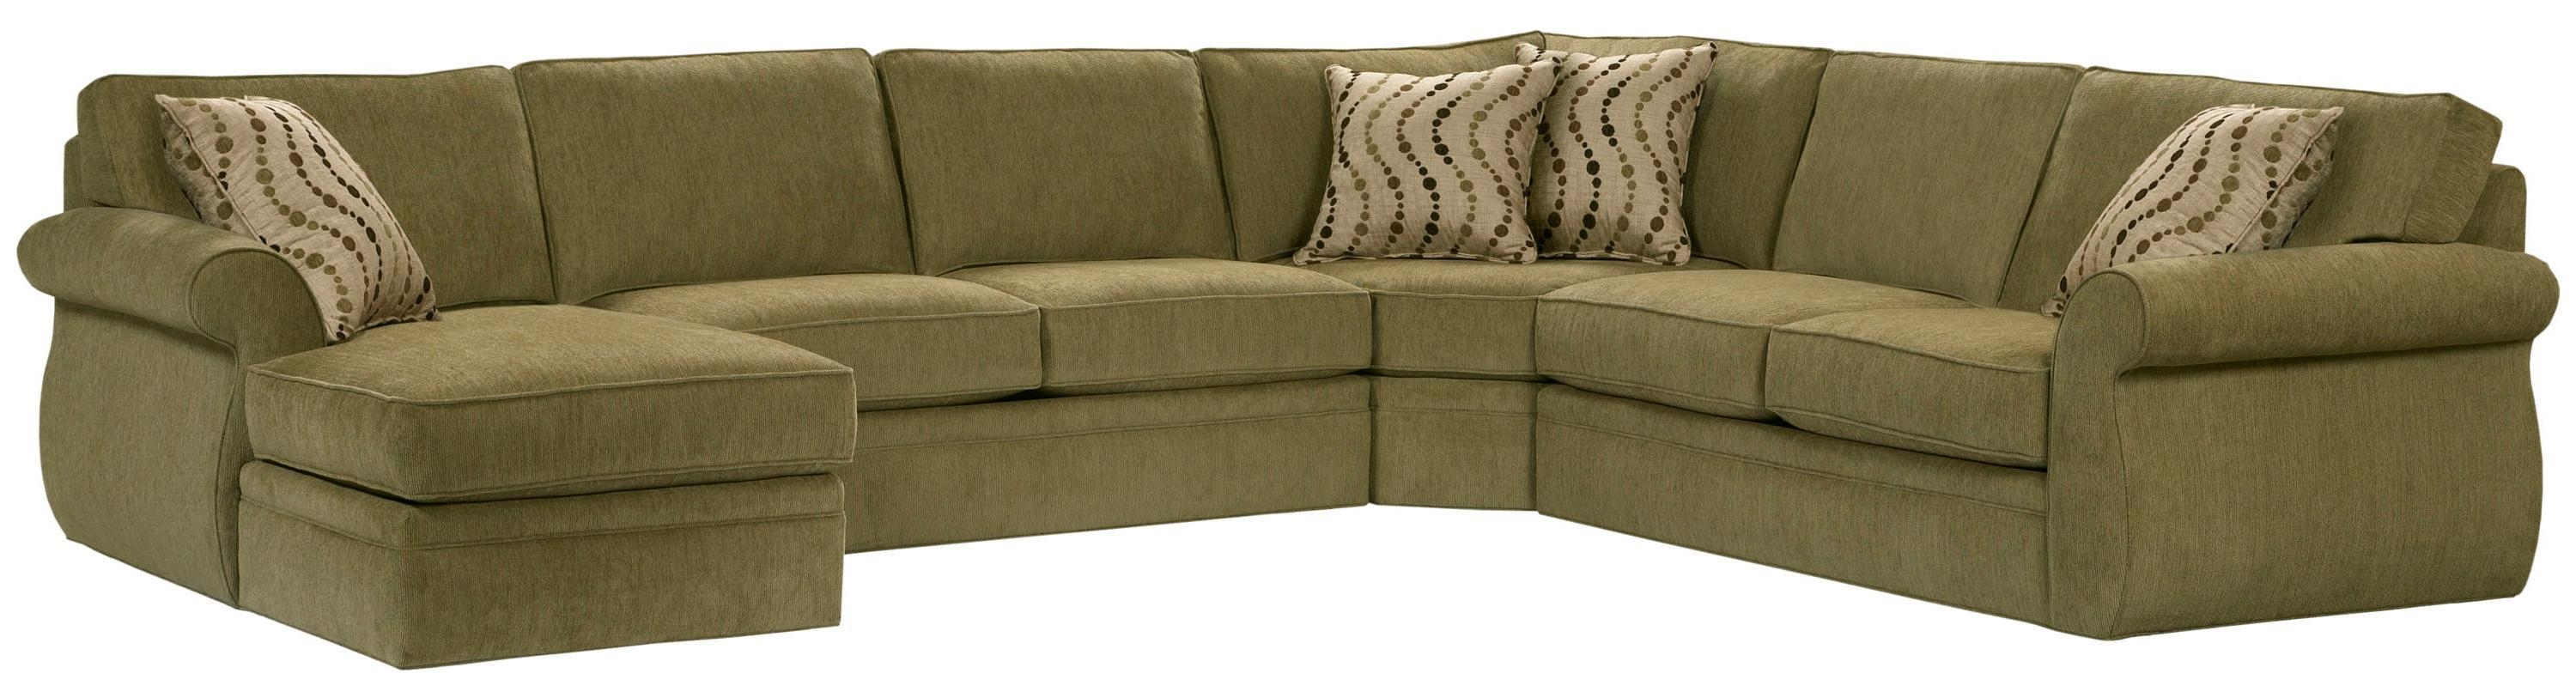 Broyhill Furniture Veronica Chaise Sectional Sofa – Ahfa – Sofa For Broyhill Sectional Sleeper Sofas (Image 7 of 20)